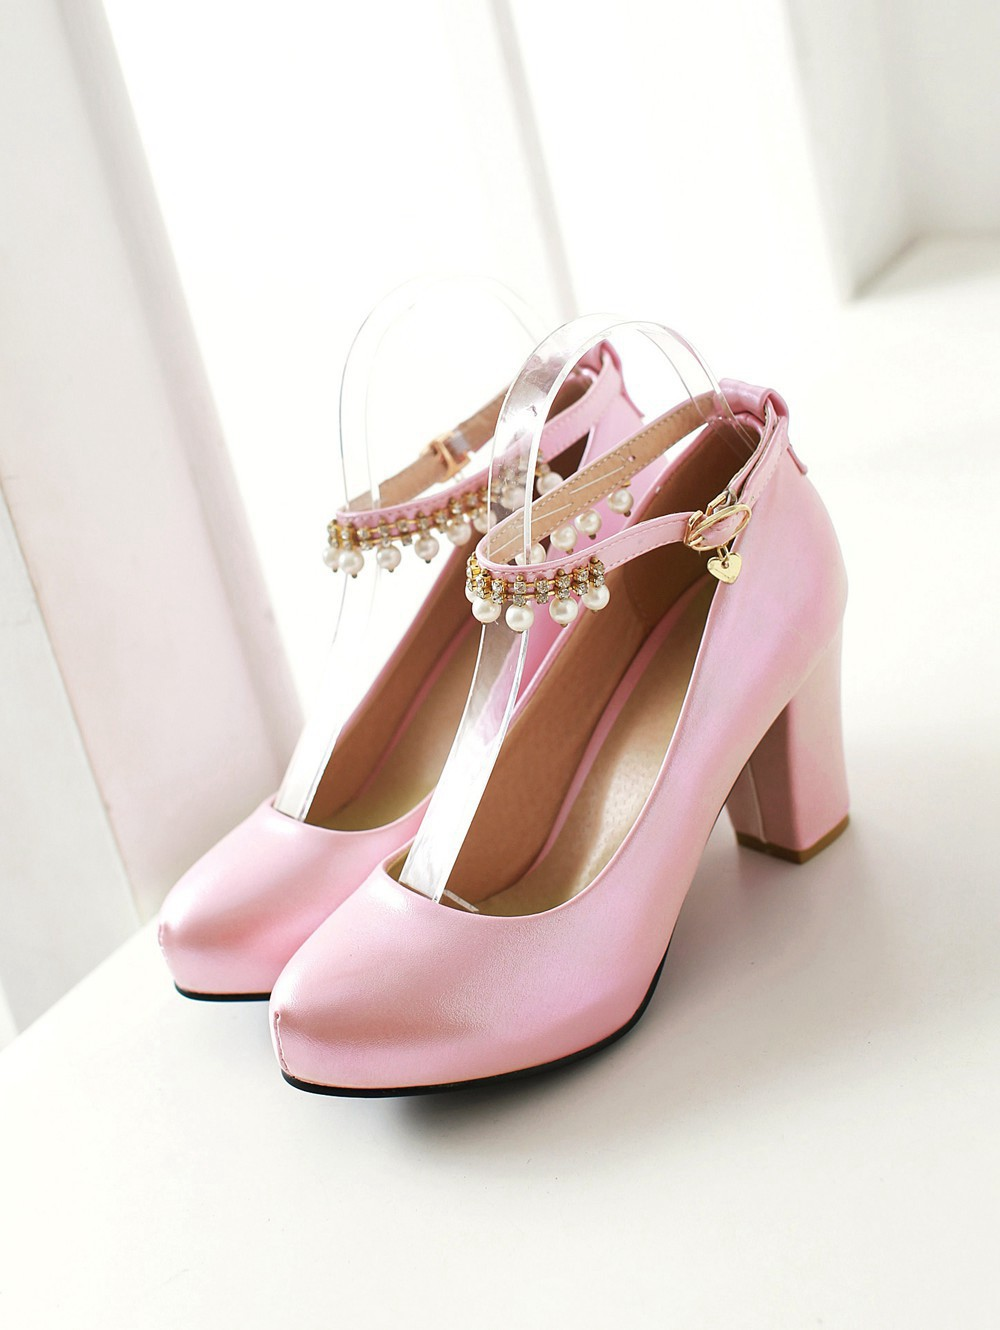 2017 Chunky High Heeled Pink Bridal Wedding Shoes Beaded White Female Buckle Elegant Pumps Silver Gold41